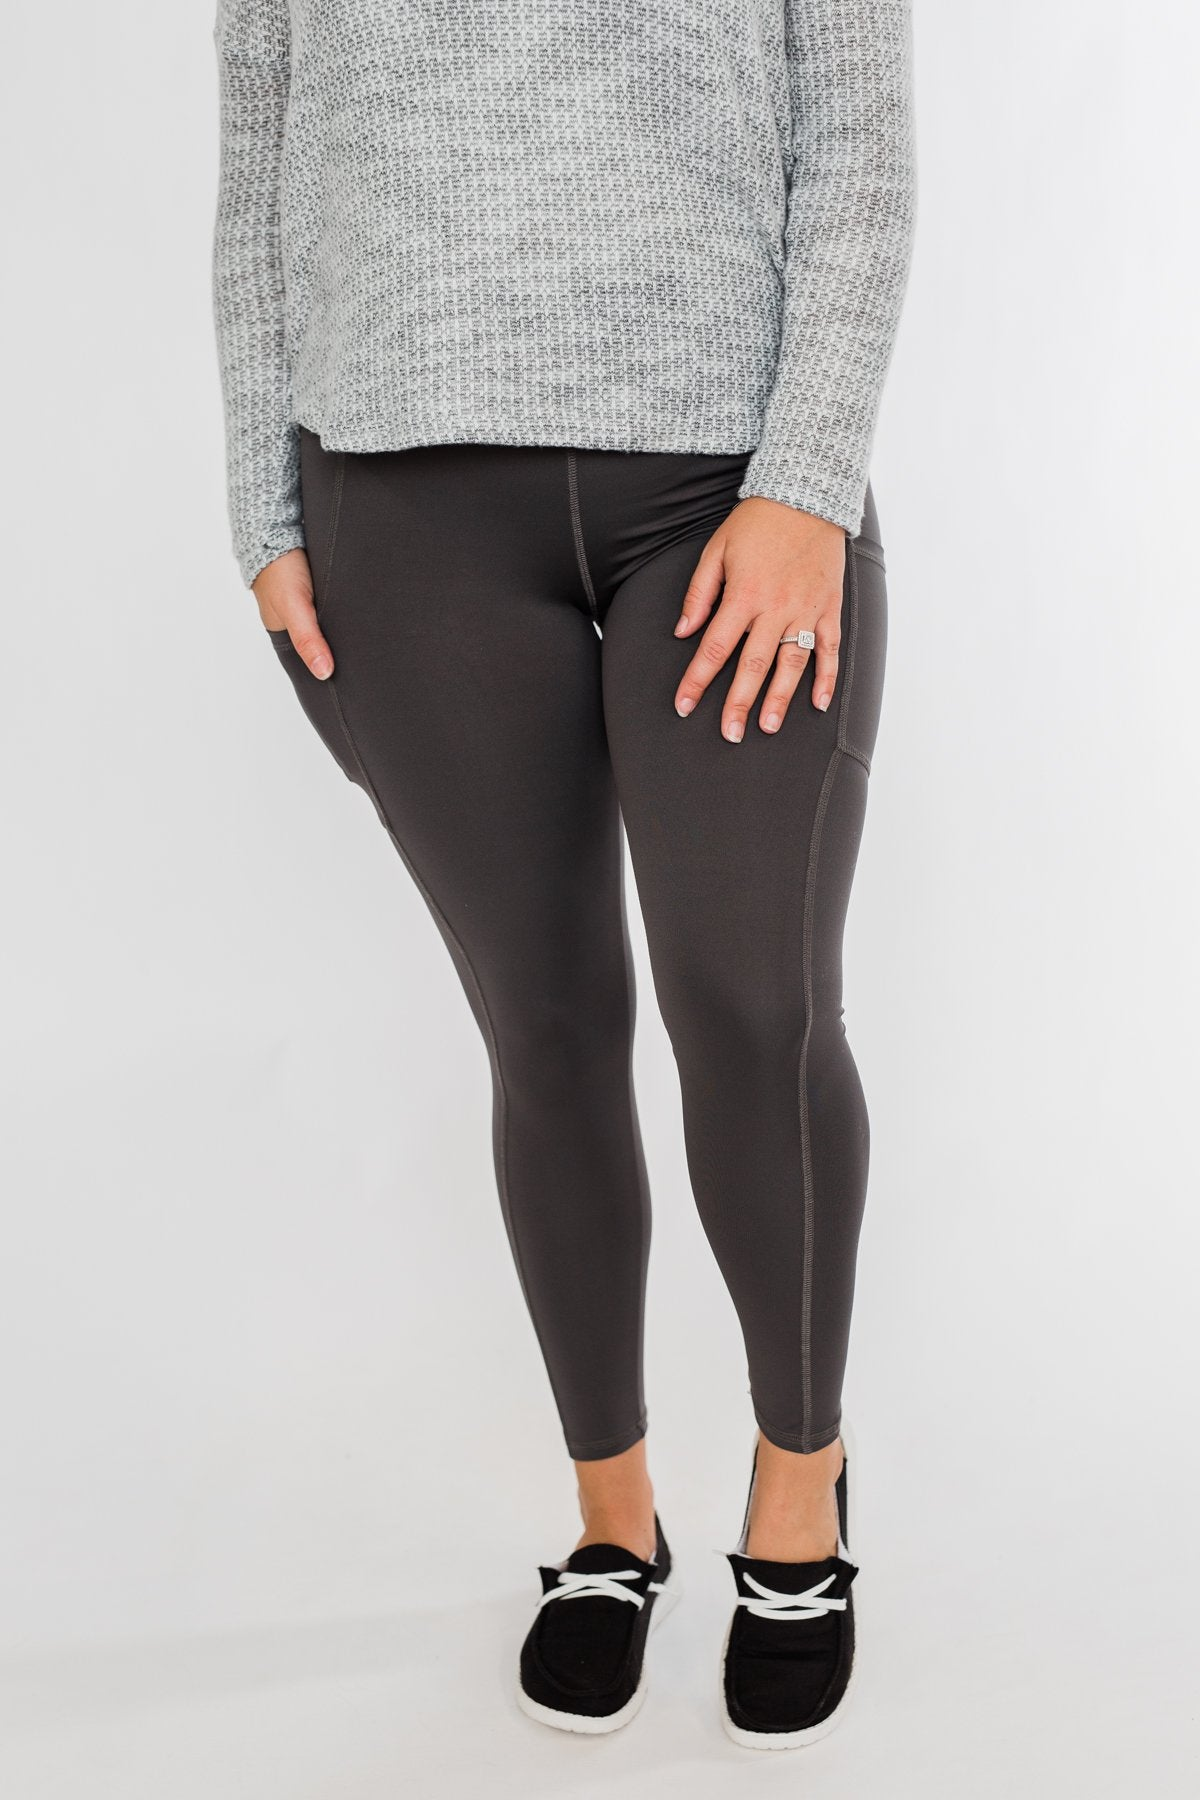 Pulse Basics Athleisure Leggings- Charcoal